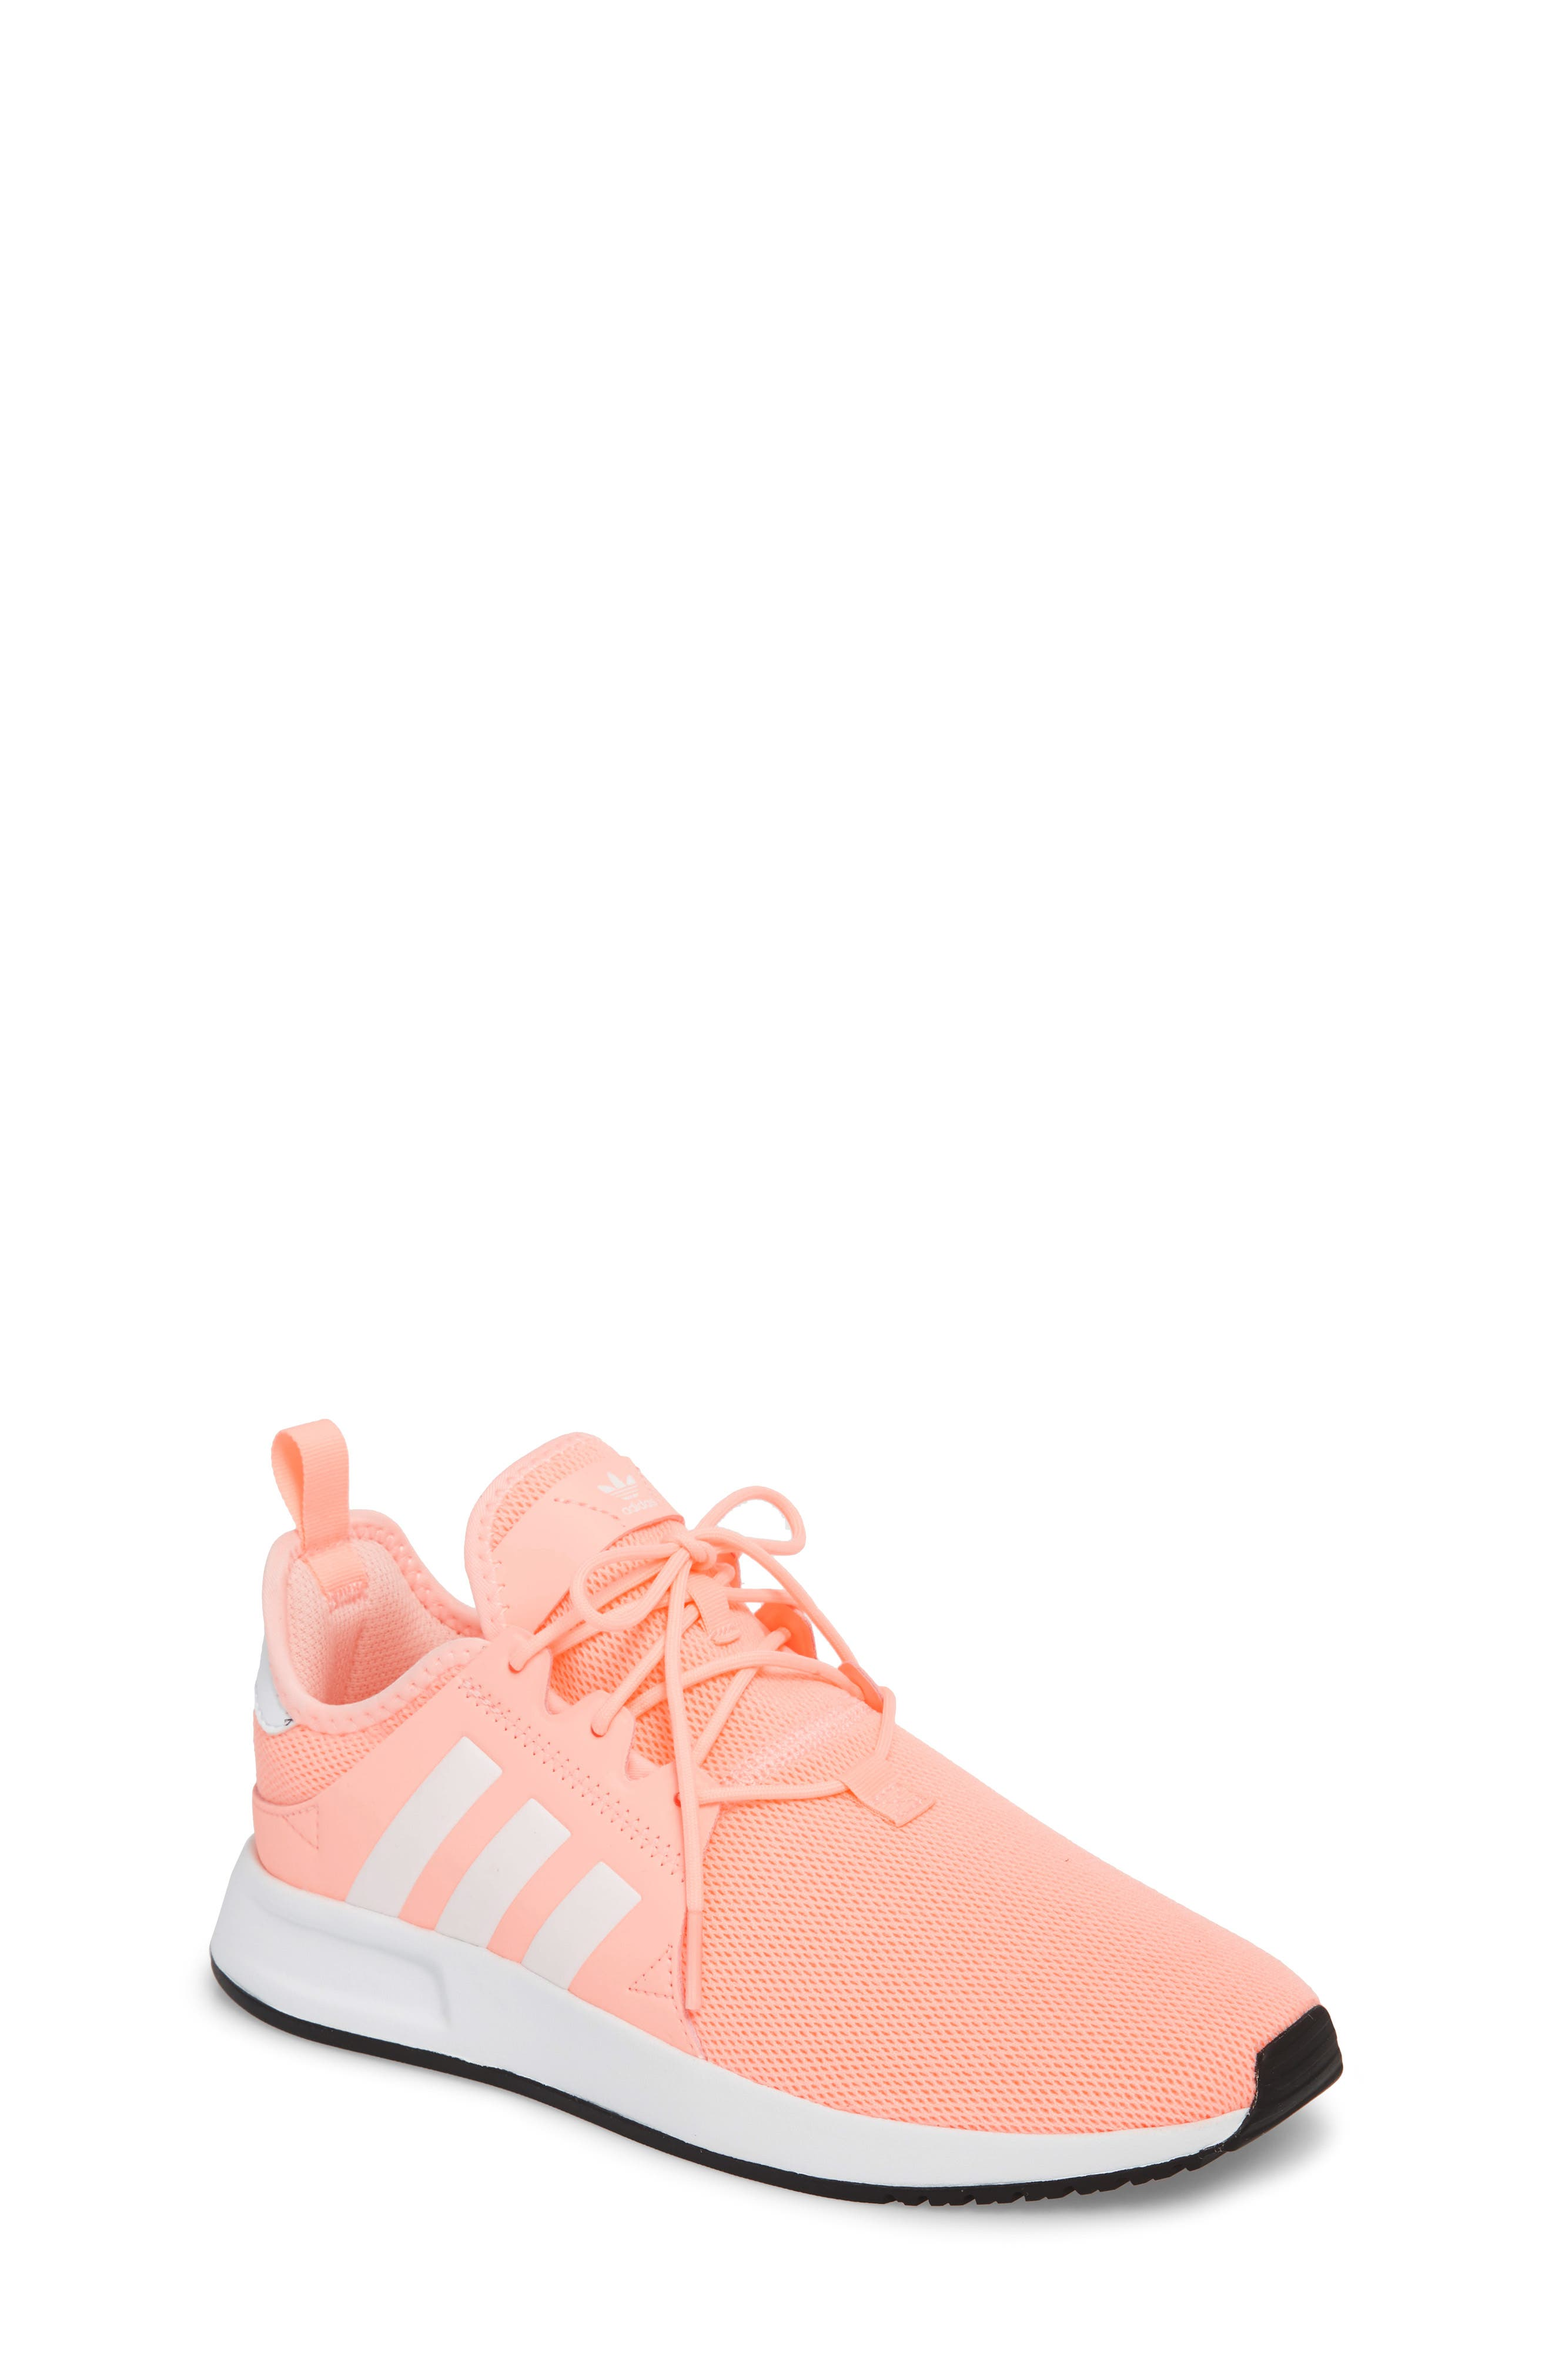 X_PLR Sneaker,                             Main thumbnail 1, color,                             Clear Orange/ White